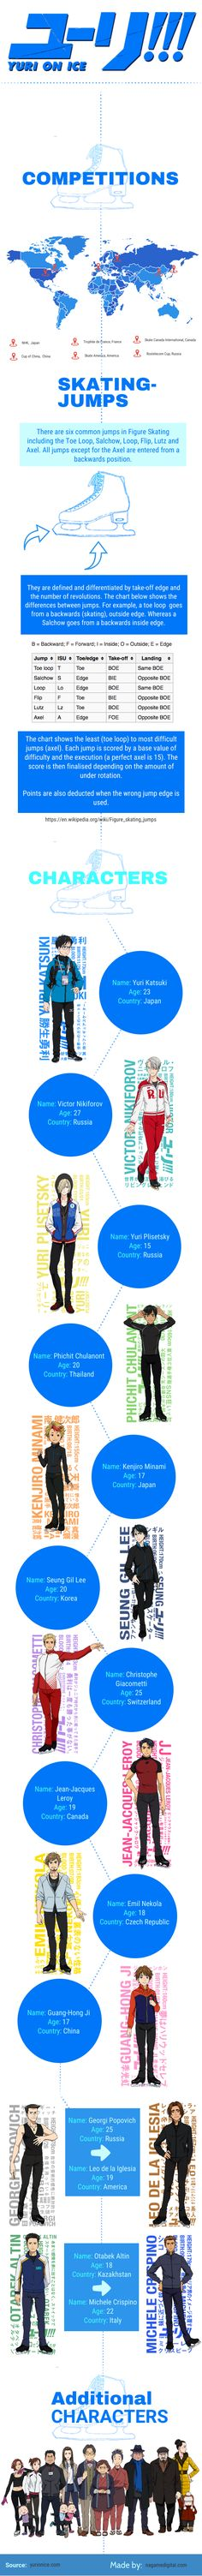 yuri on ice, infographic, skate locations, jump types, characters